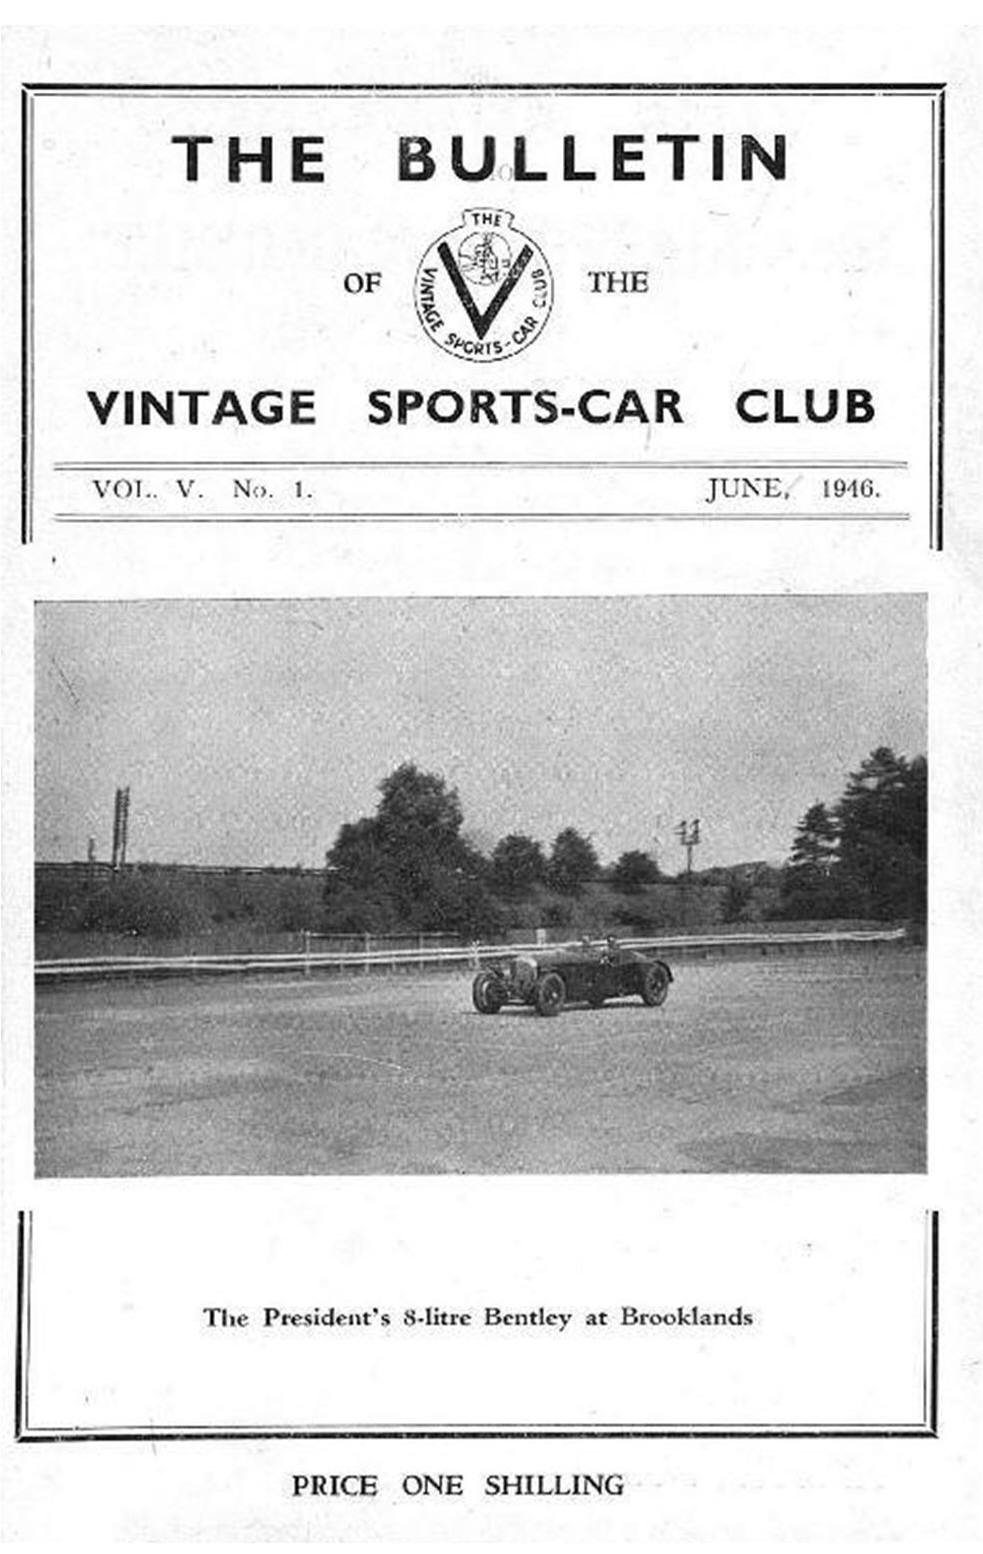 Bagshot-The Opening Rally Sept. 1945. Elstree Speed Trials. Pomeroy Trophy cover